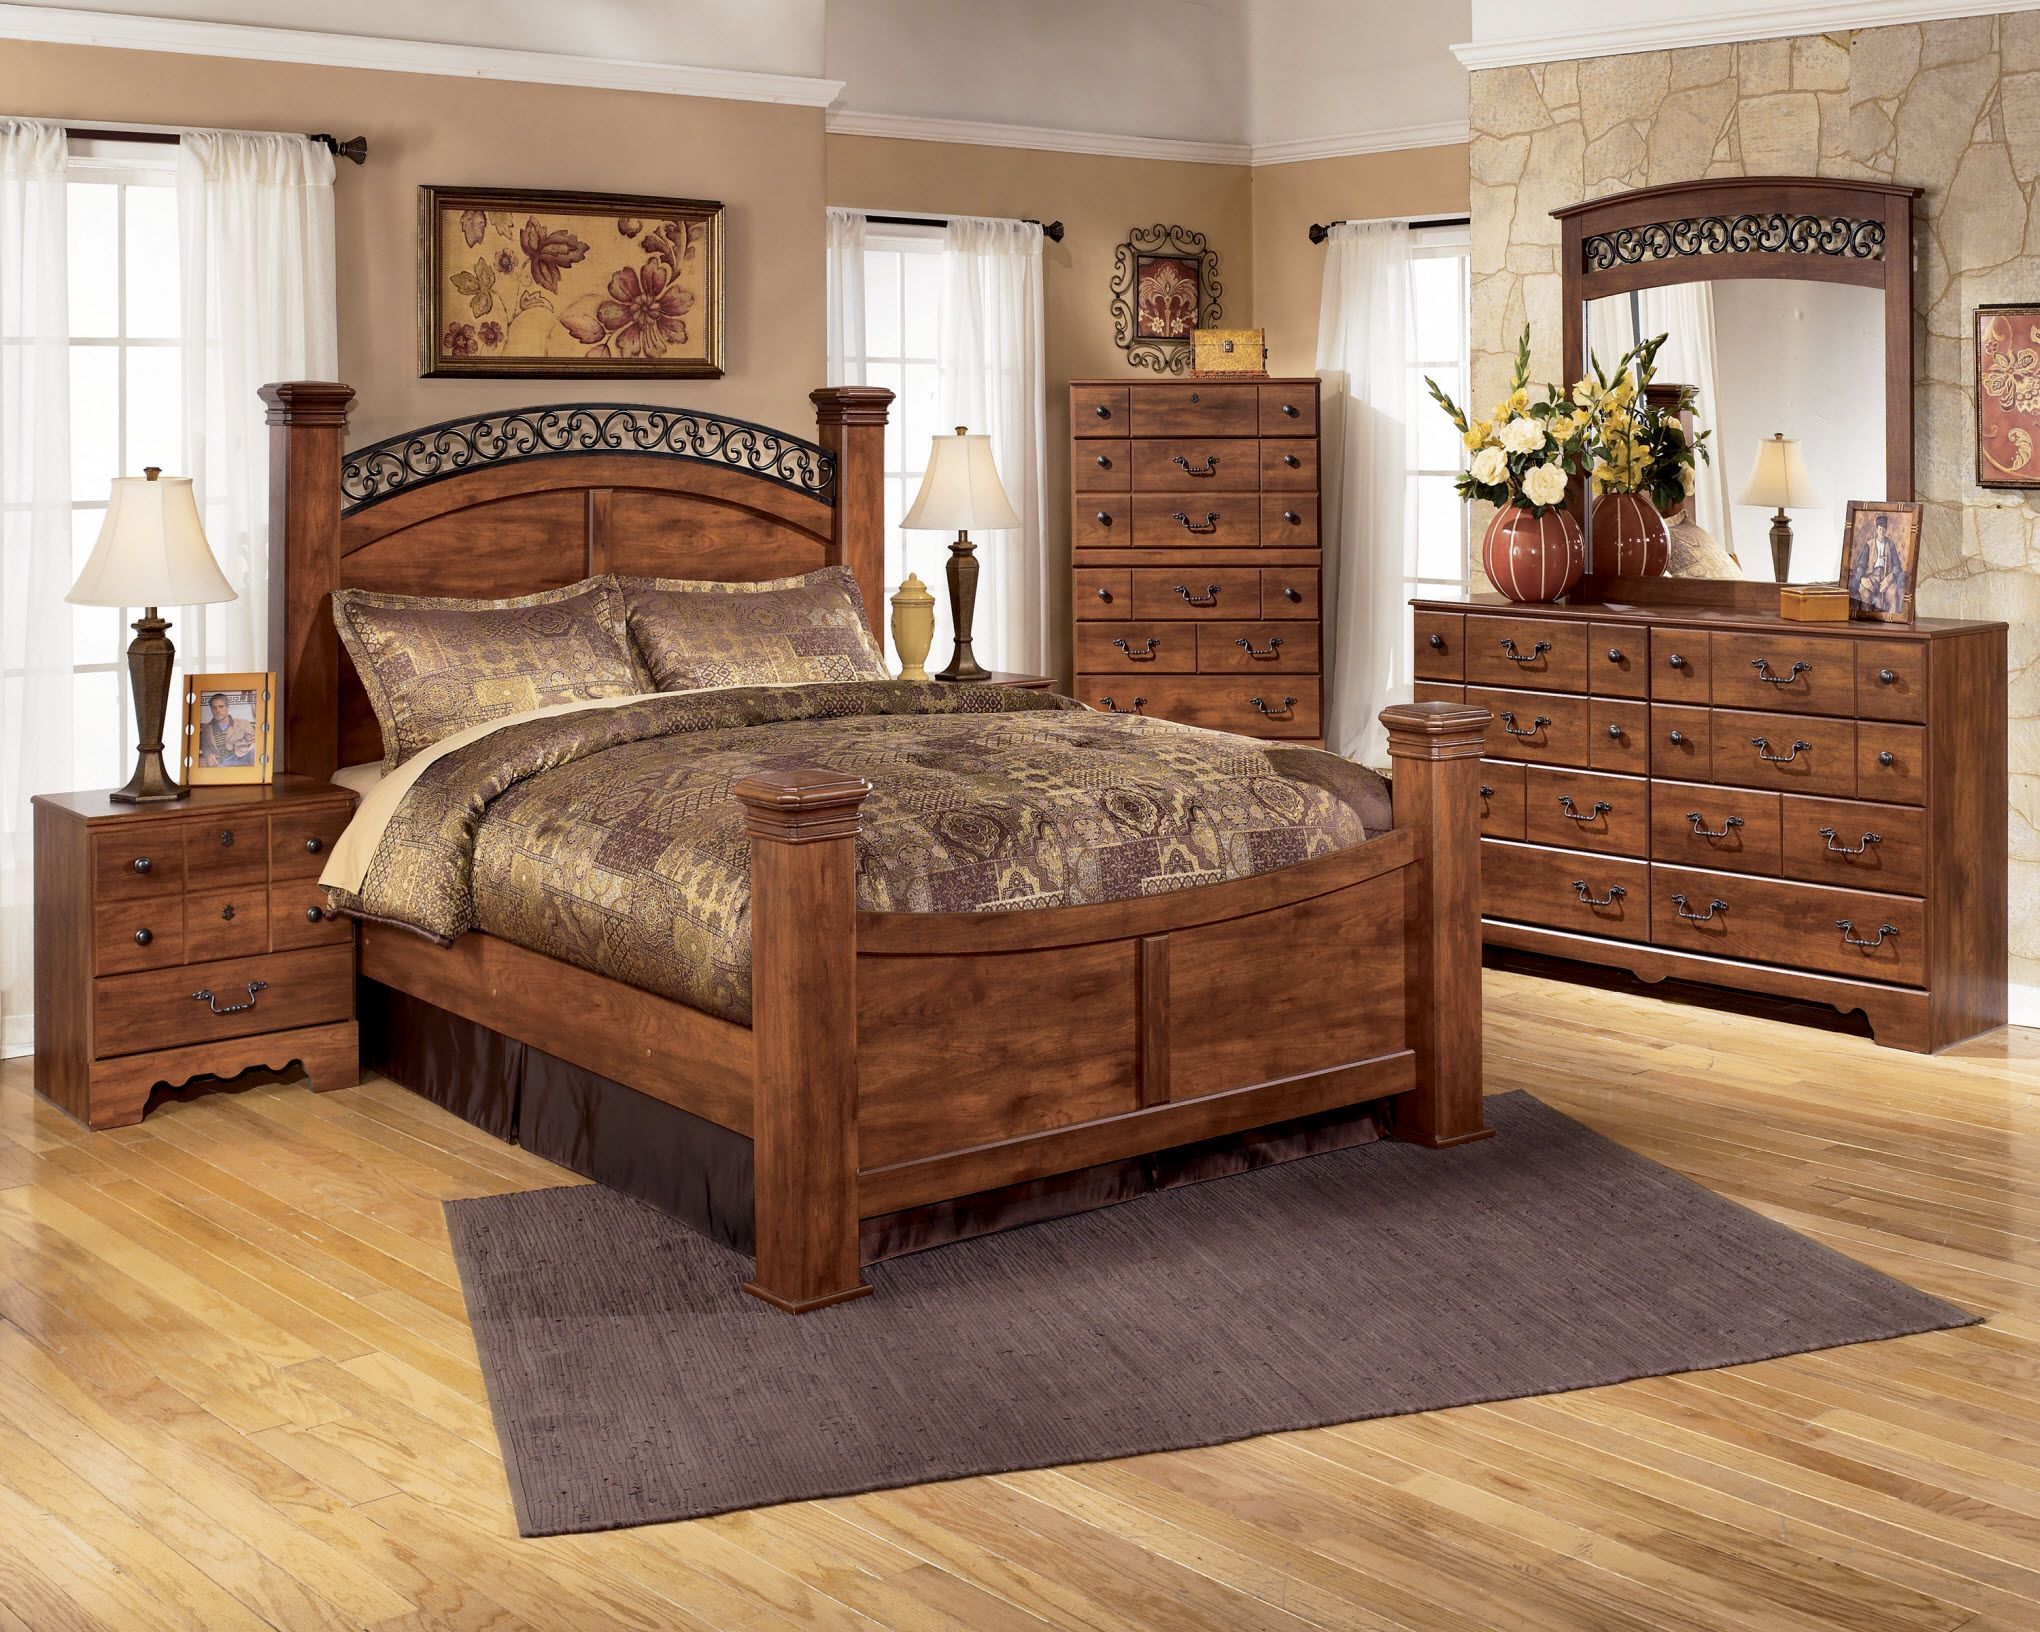 images about Bedroom Ideas on Pinterest Stylish bedroom